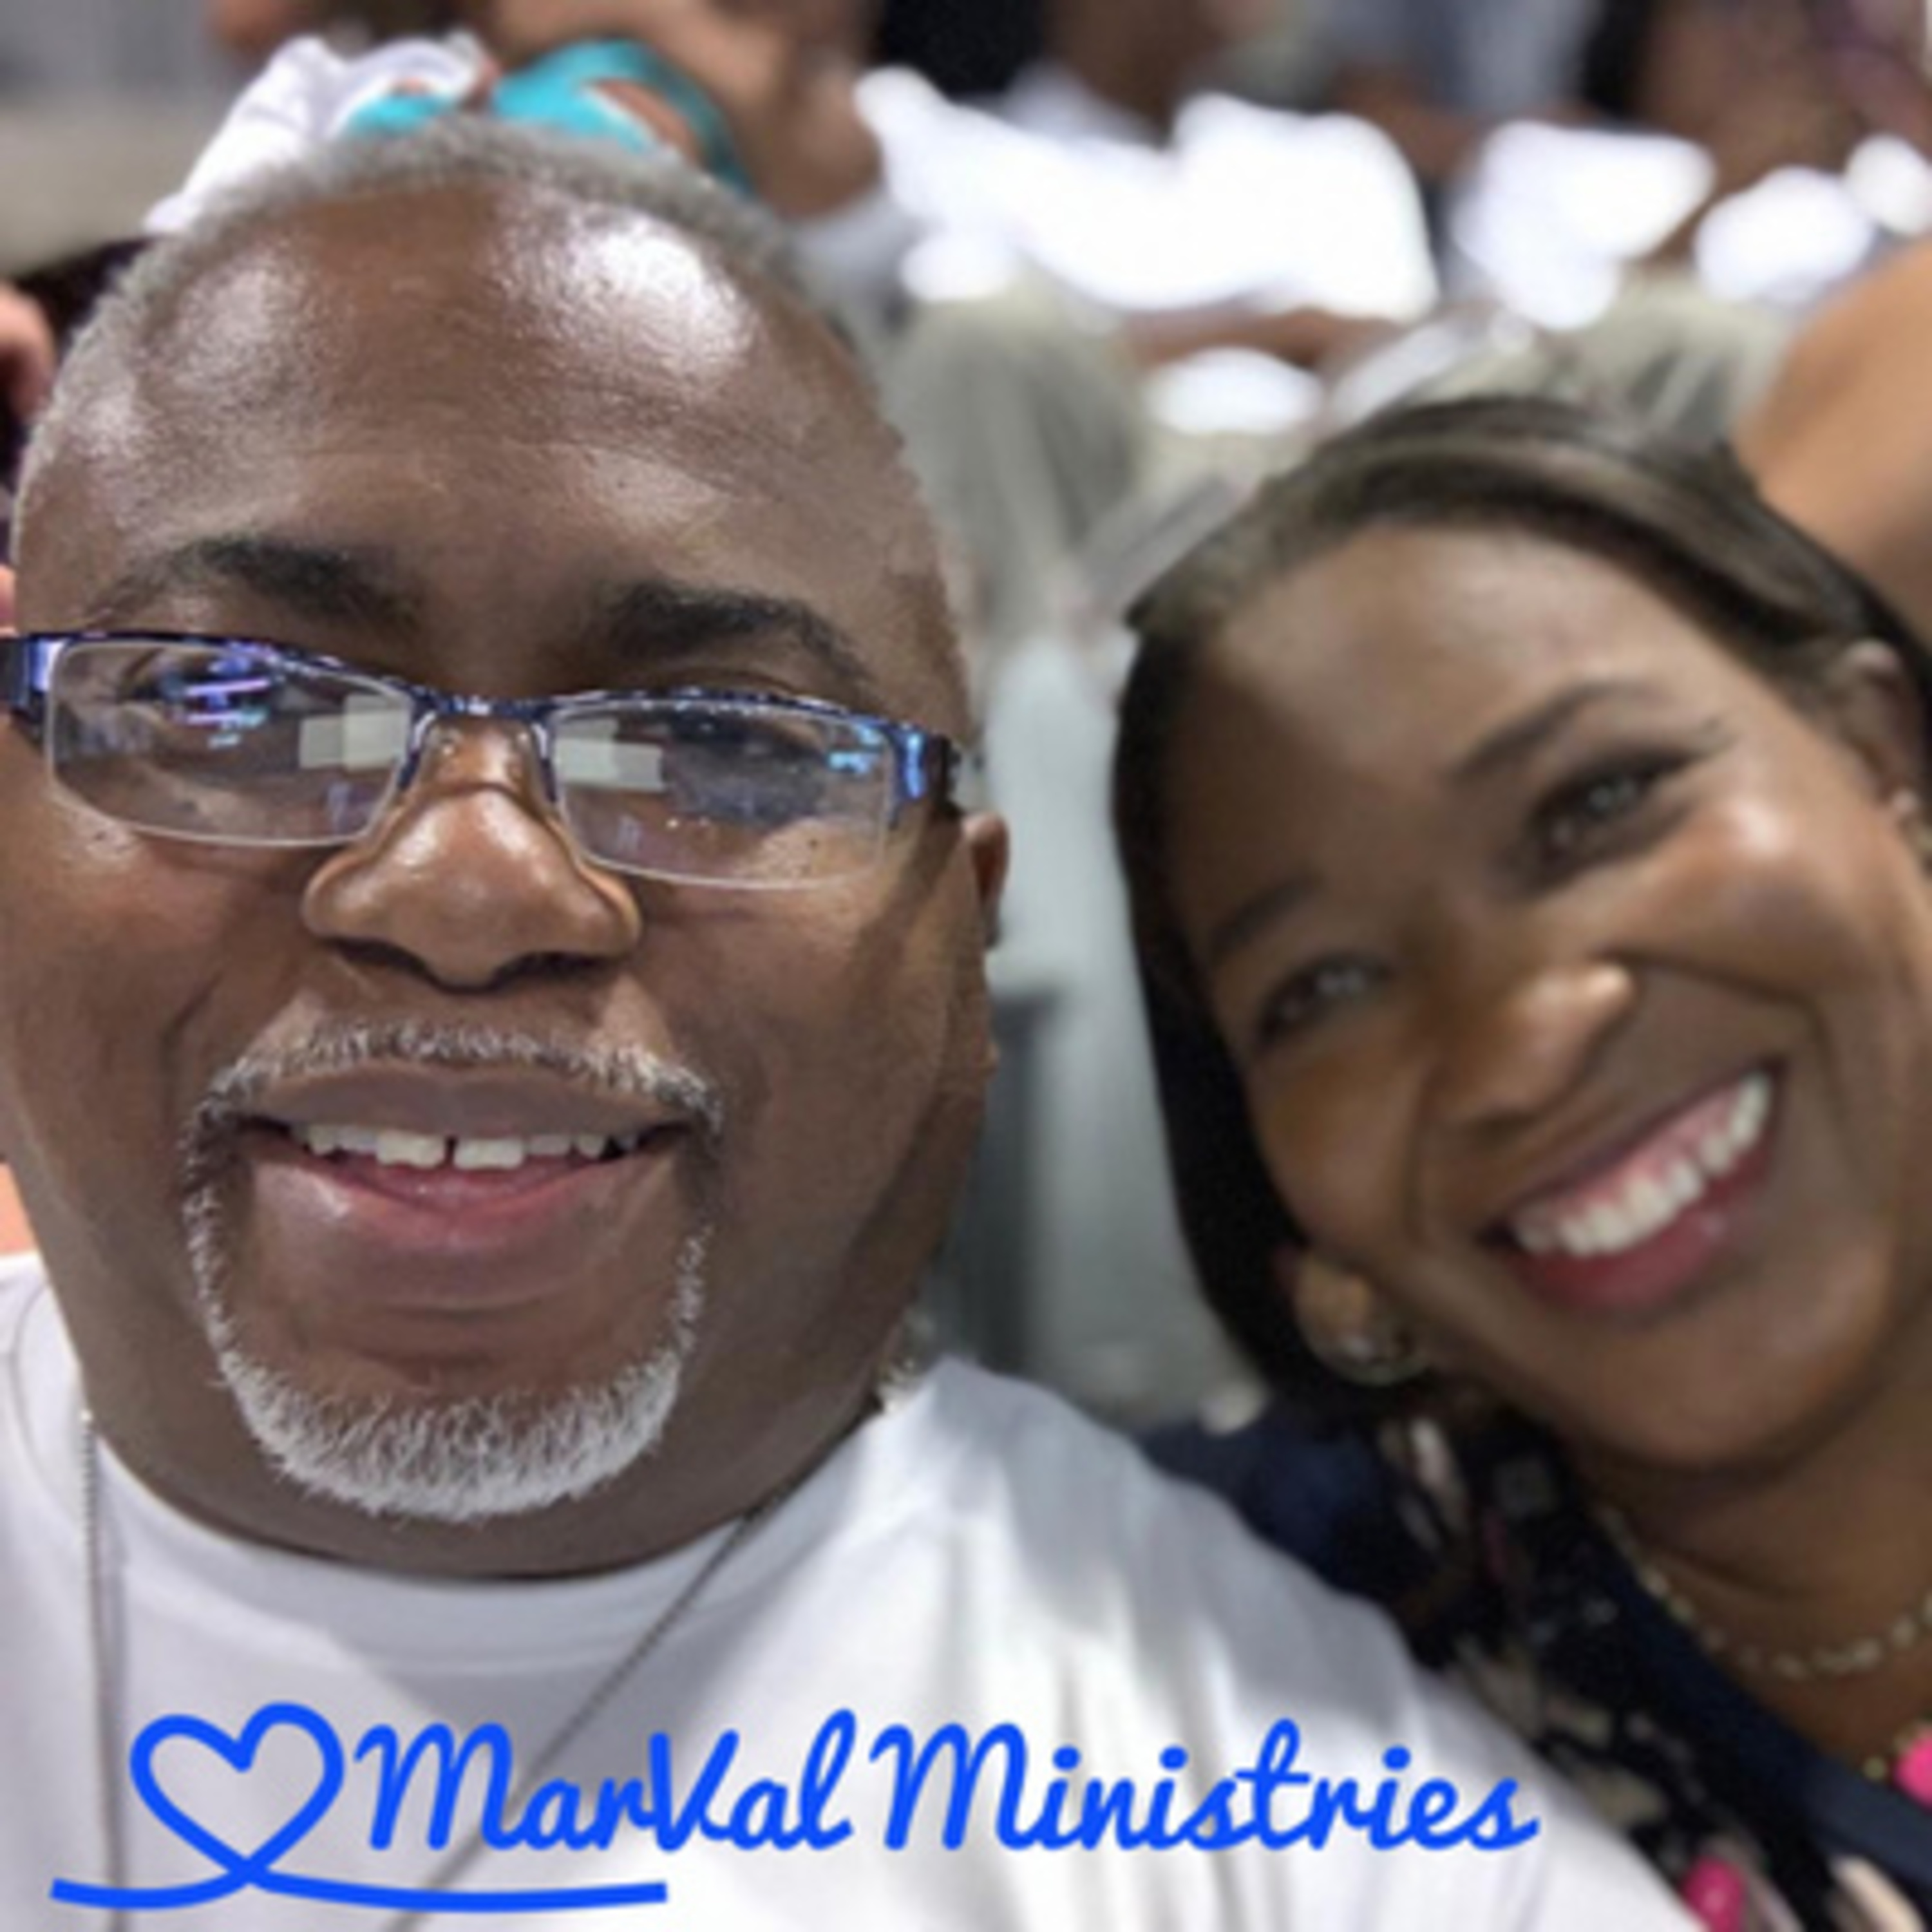 MarVal Ministries: Welcome to MarVal Ministries